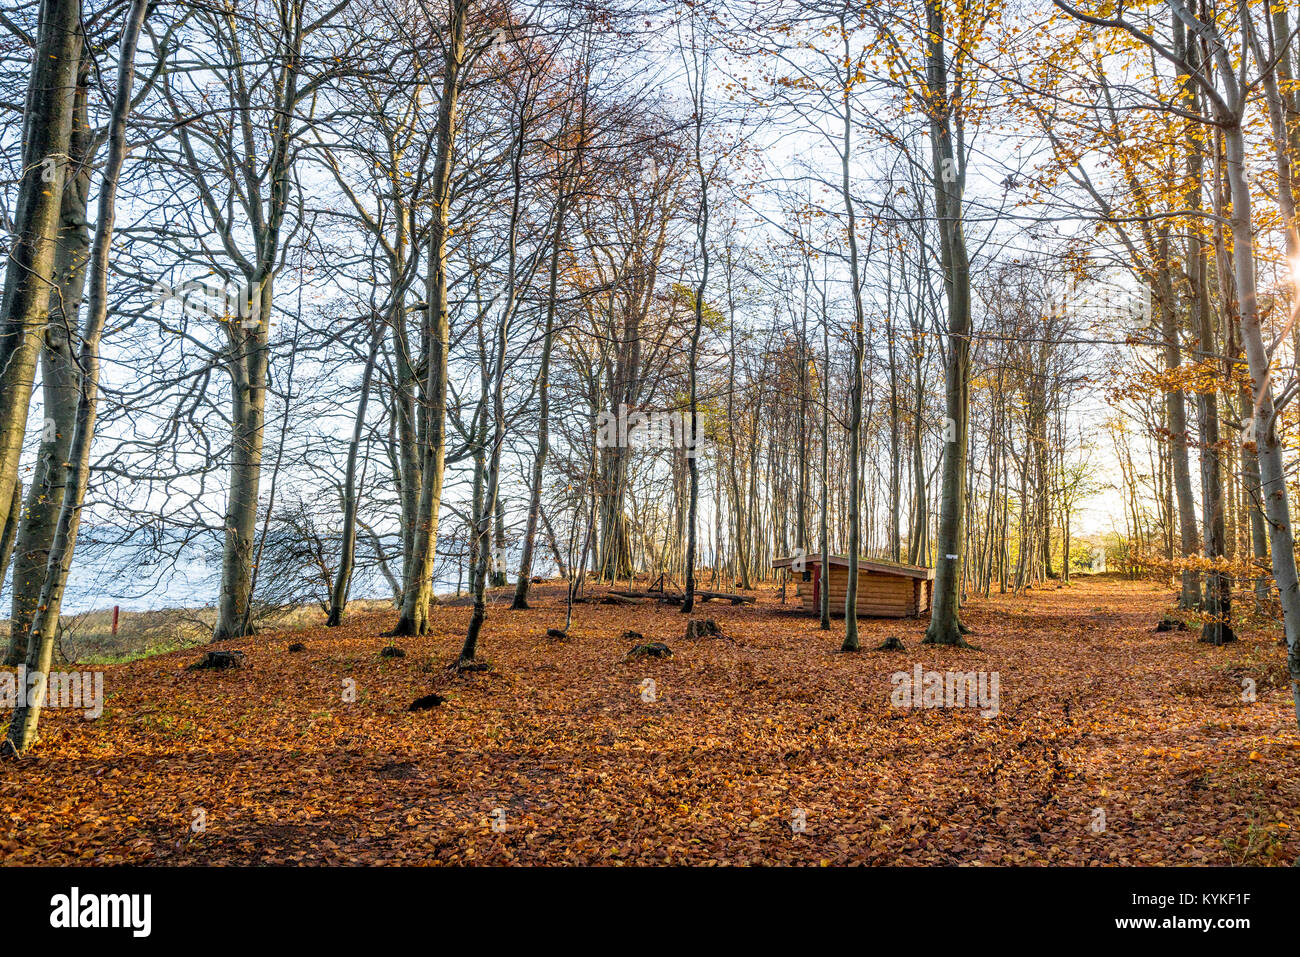 Forest scenery with a wooden shelter in the morning with fallen autumn leaves - Stock Image